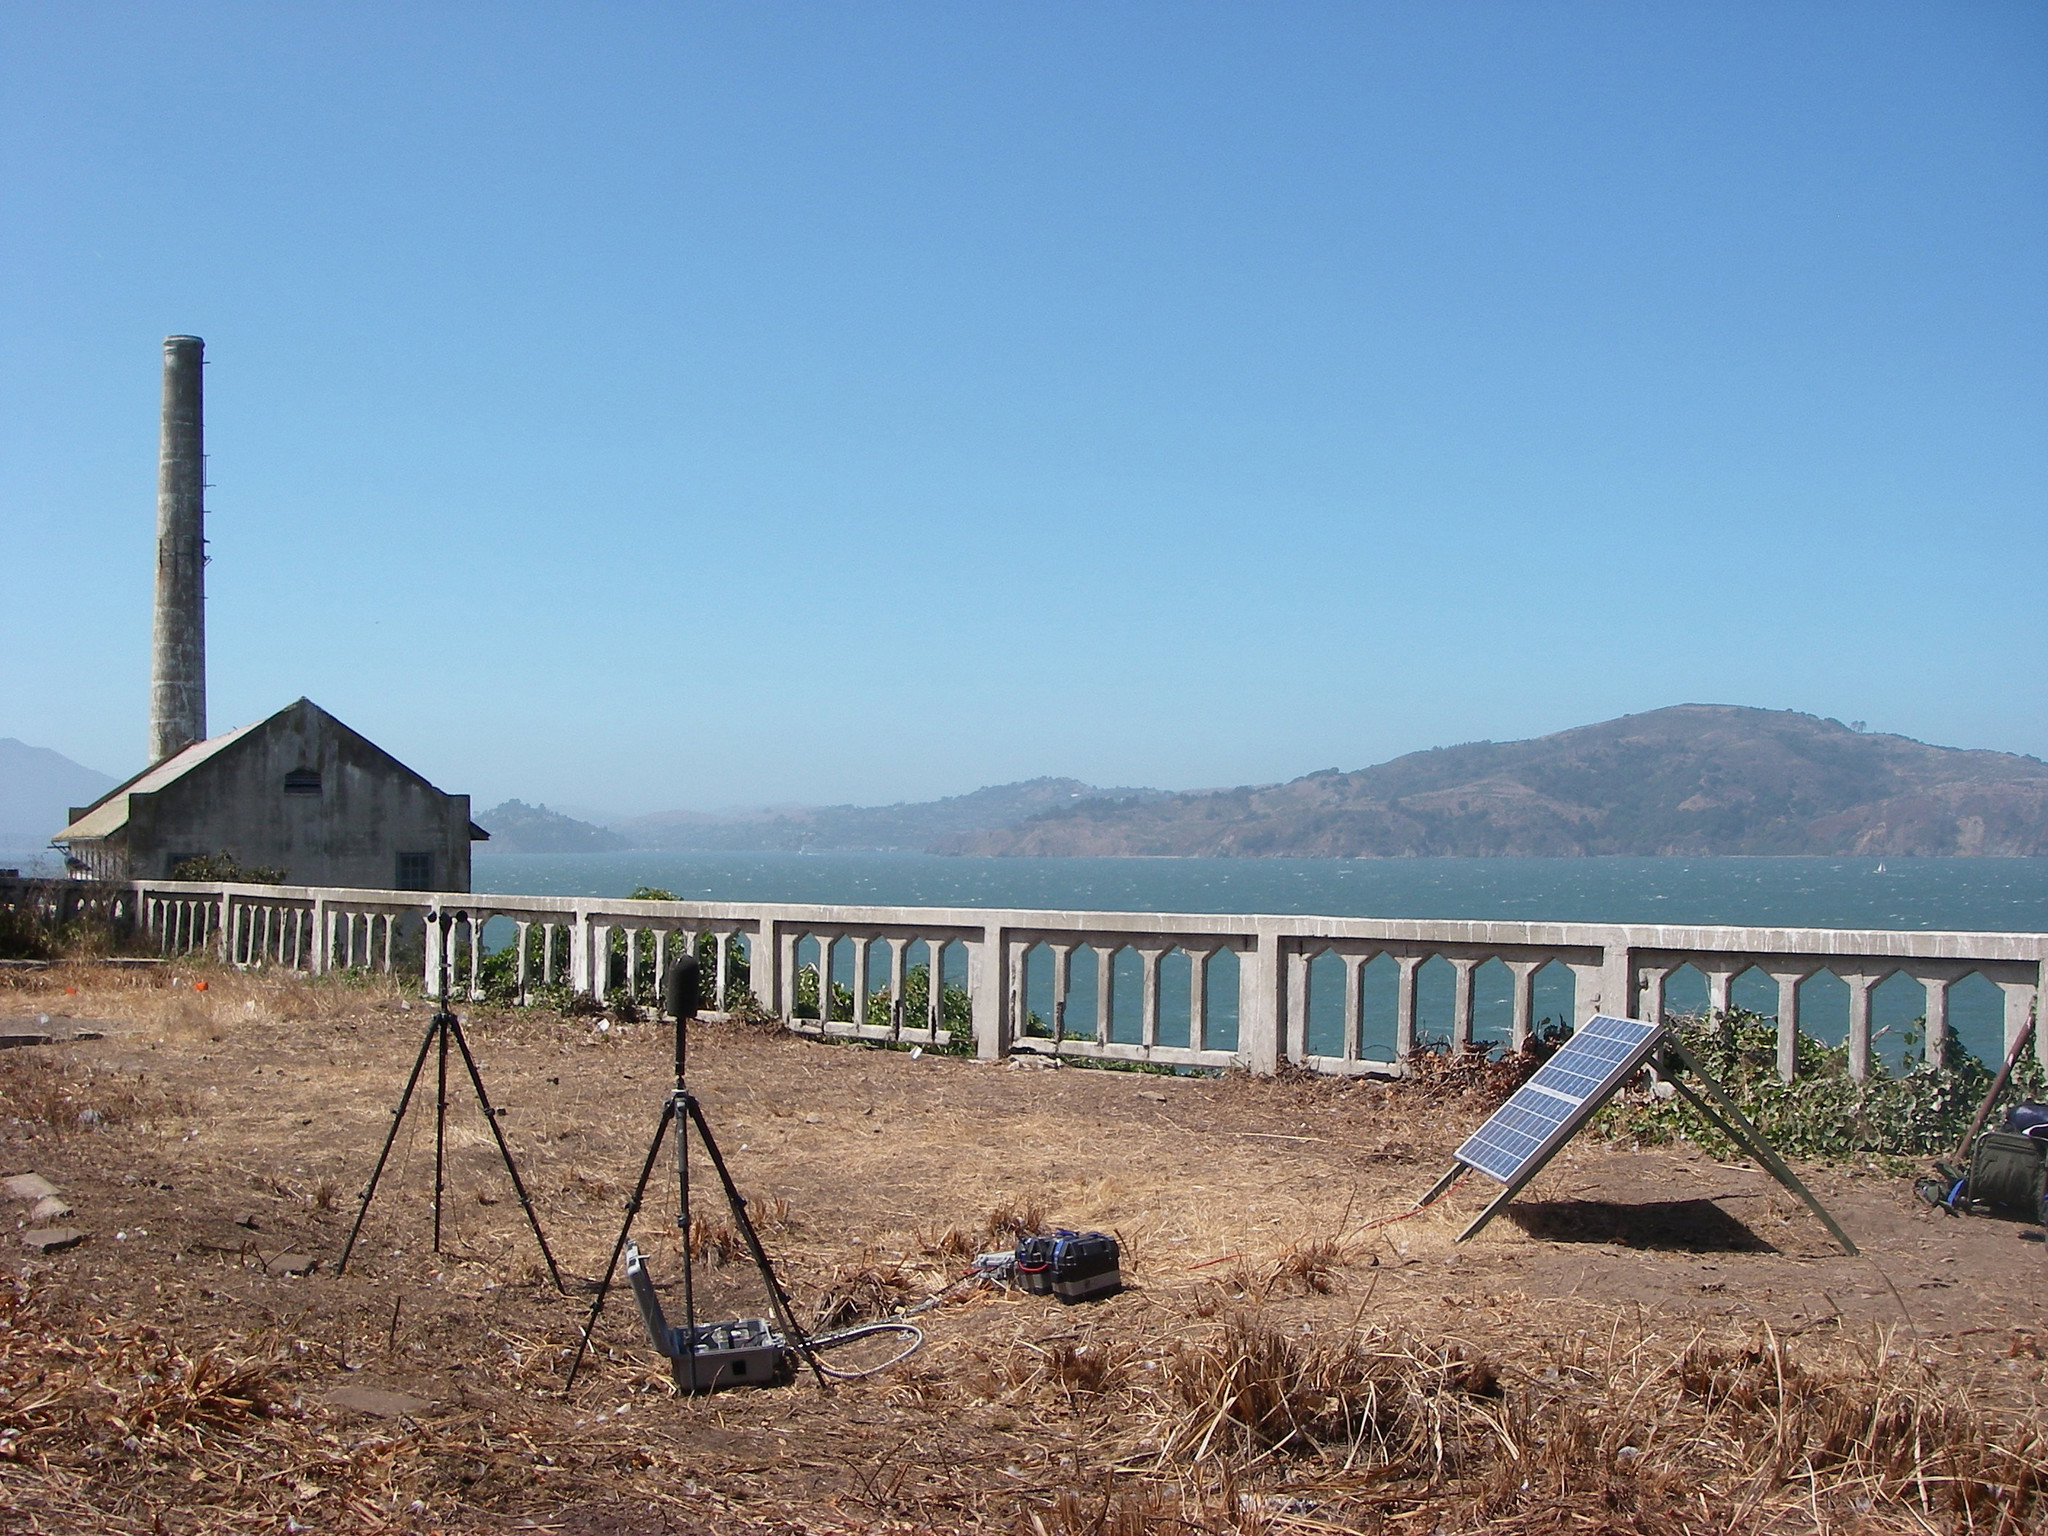 An acoustic recording station captures sound conditions on Alcatraz Island in the San Francisco Bay's Golden Gate National Recreation Area.